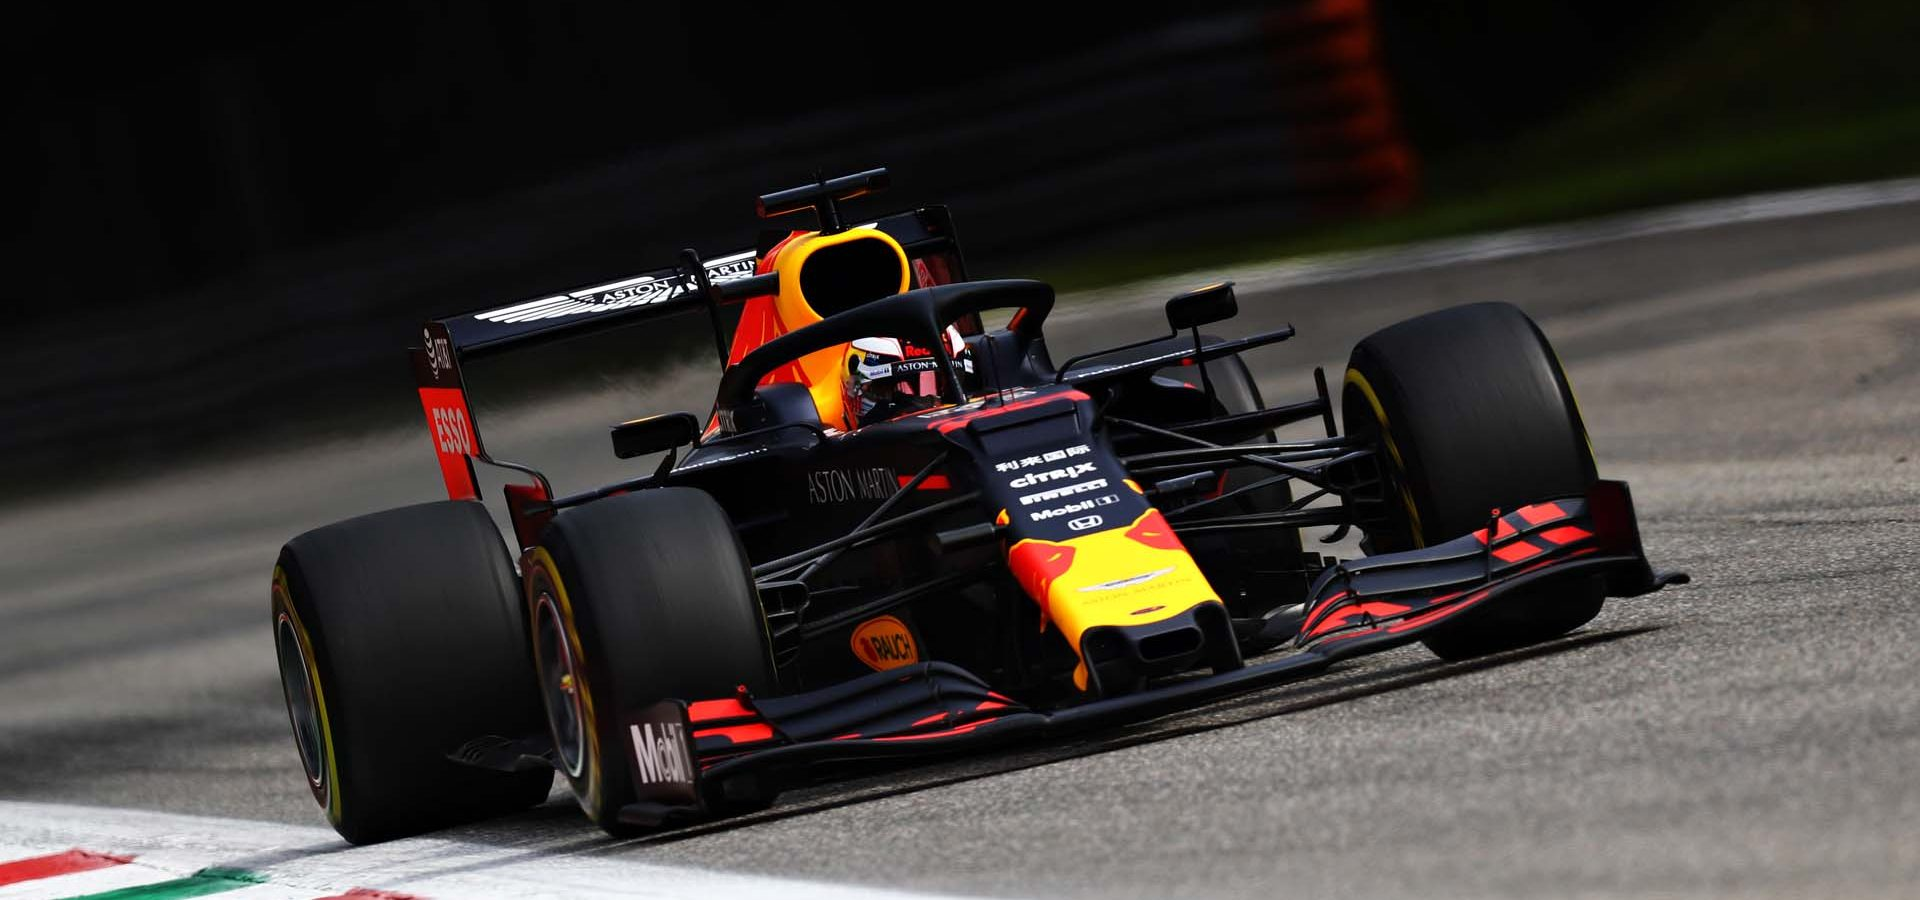 MONZA, ITALY - SEPTEMBER 07: Max Verstappen of the Netherlands driving the (33) Aston Martin Red Bull Racing RB15 on track during final practice for the F1 Grand Prix of Italy at Autodromo di Monza on September 07, 2019 in Monza, Italy. (Photo by Mark Thompson/Getty Images) // Getty Images / Red Bull Content Pool  // AP-21GFQJUC92111 // Usage for editorial use only //